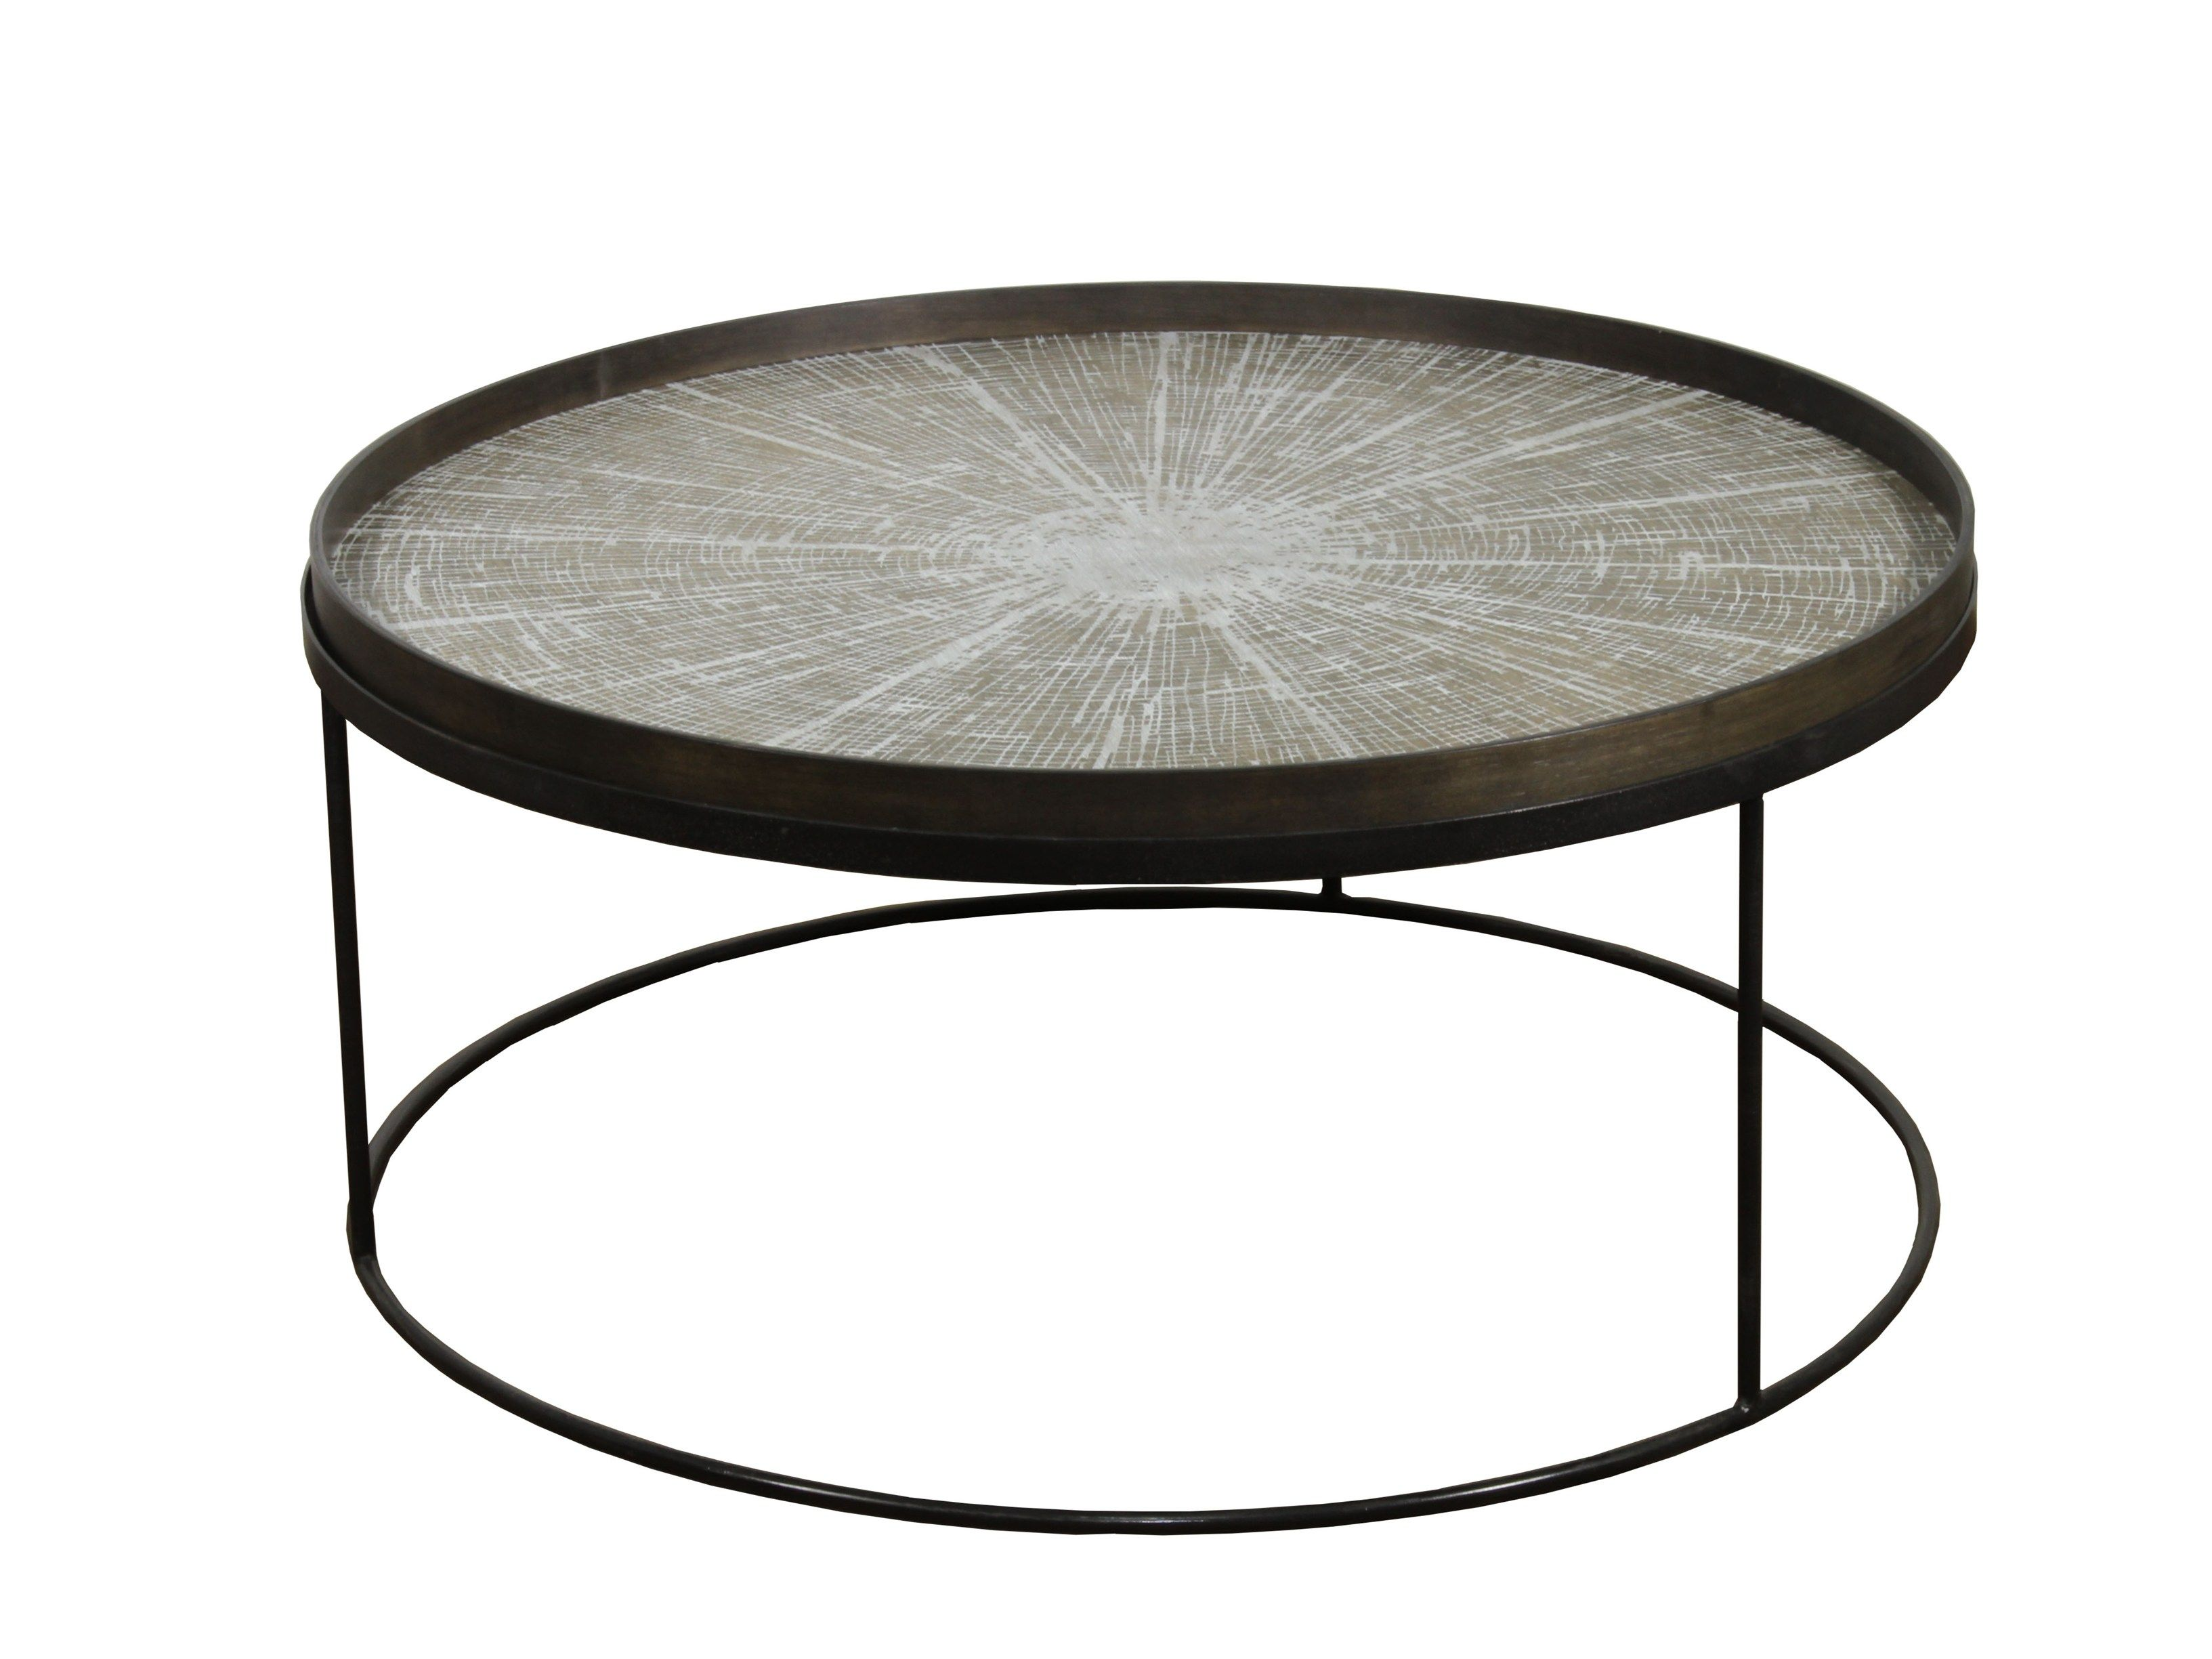 Download The Catalogue And Request Prices Of Round Tray Table Low Xl By Notre Monde Round Coffee Table With Tray Desi Coffee Table Buy Coffee Table Tray Table [ 2449 x 3266 Pixel ]